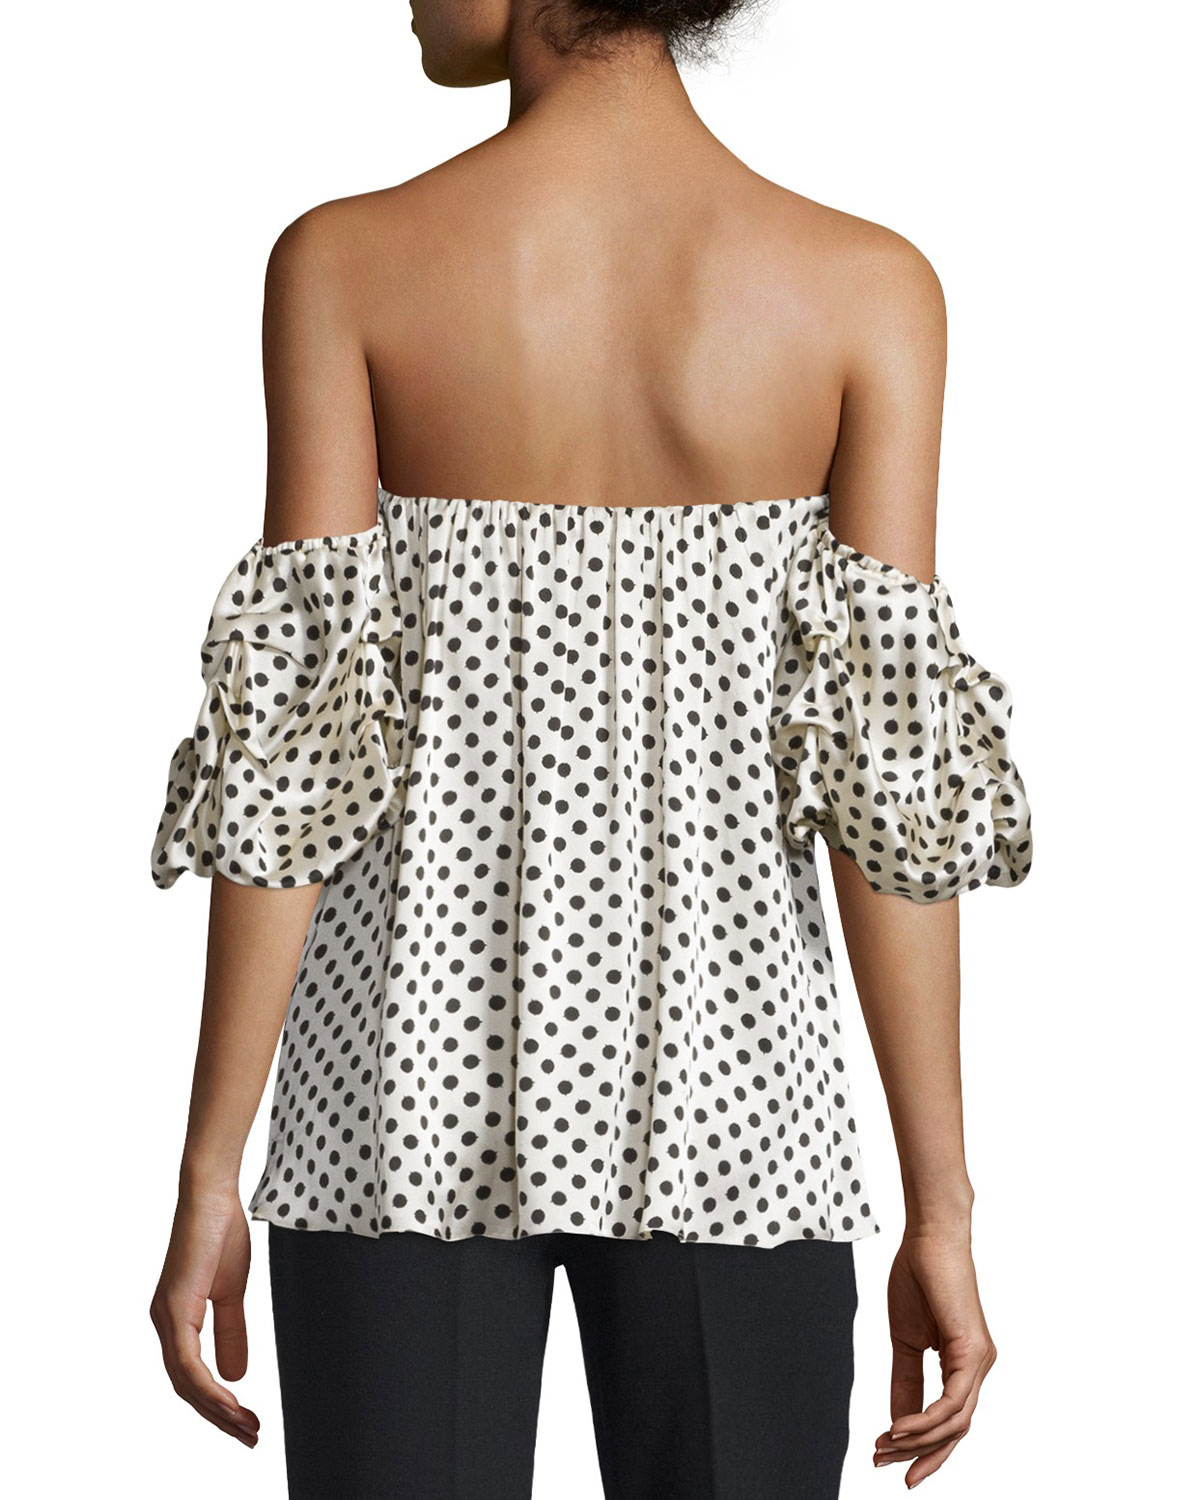 57c38d5e48e Johanna Ortiz Tulum Polka Dot Off-the-shoulder Top in Black - Lyst